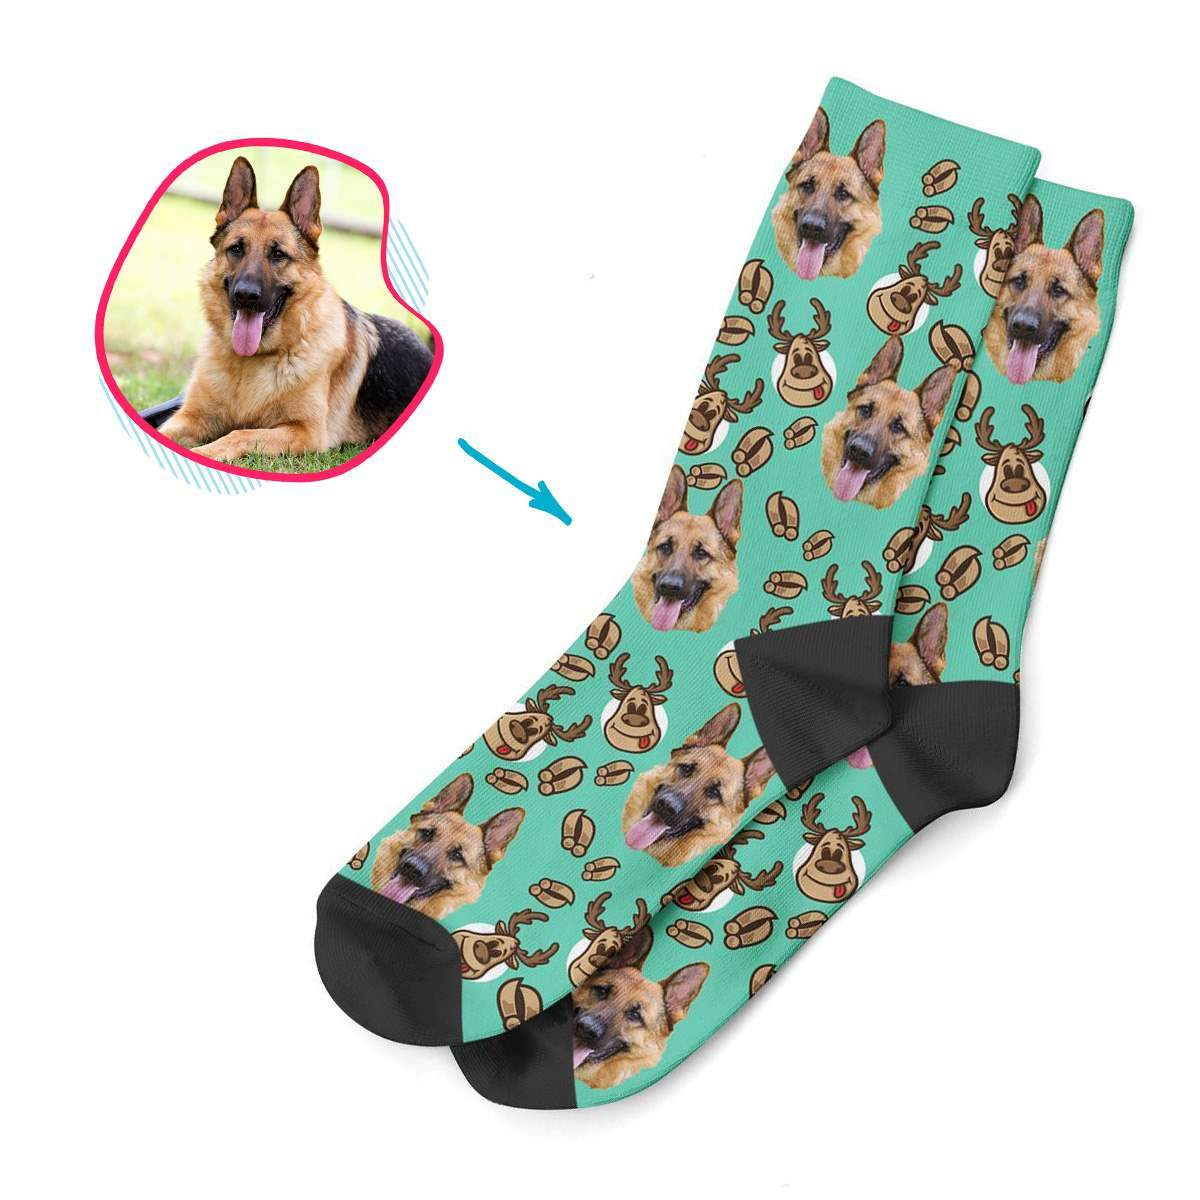 mint Deer Hunter socks personalized with photo of face printed on them